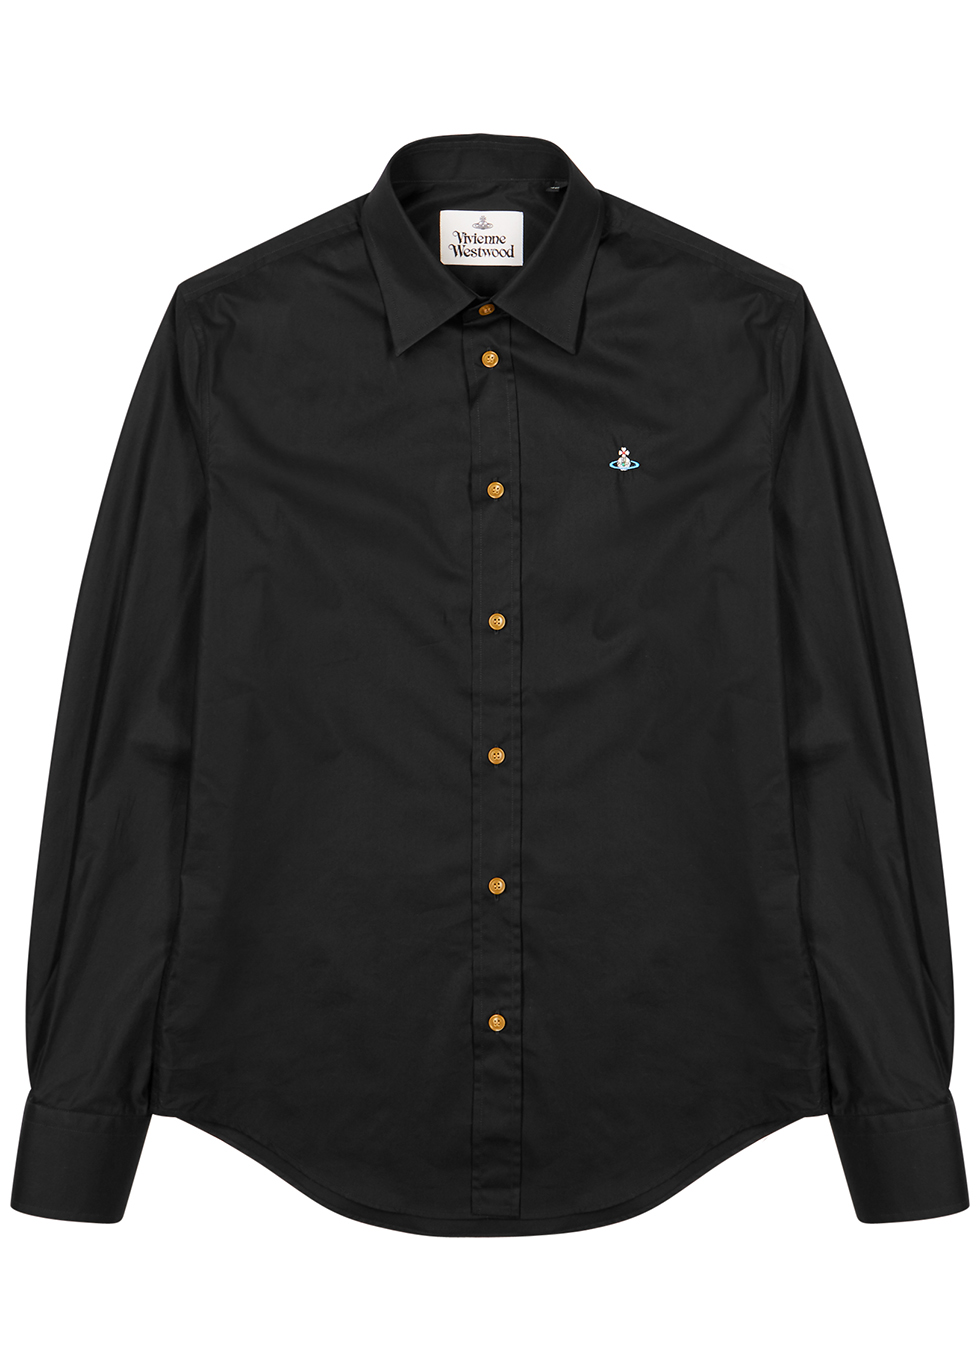 Black logo-embroidered cotton shirt